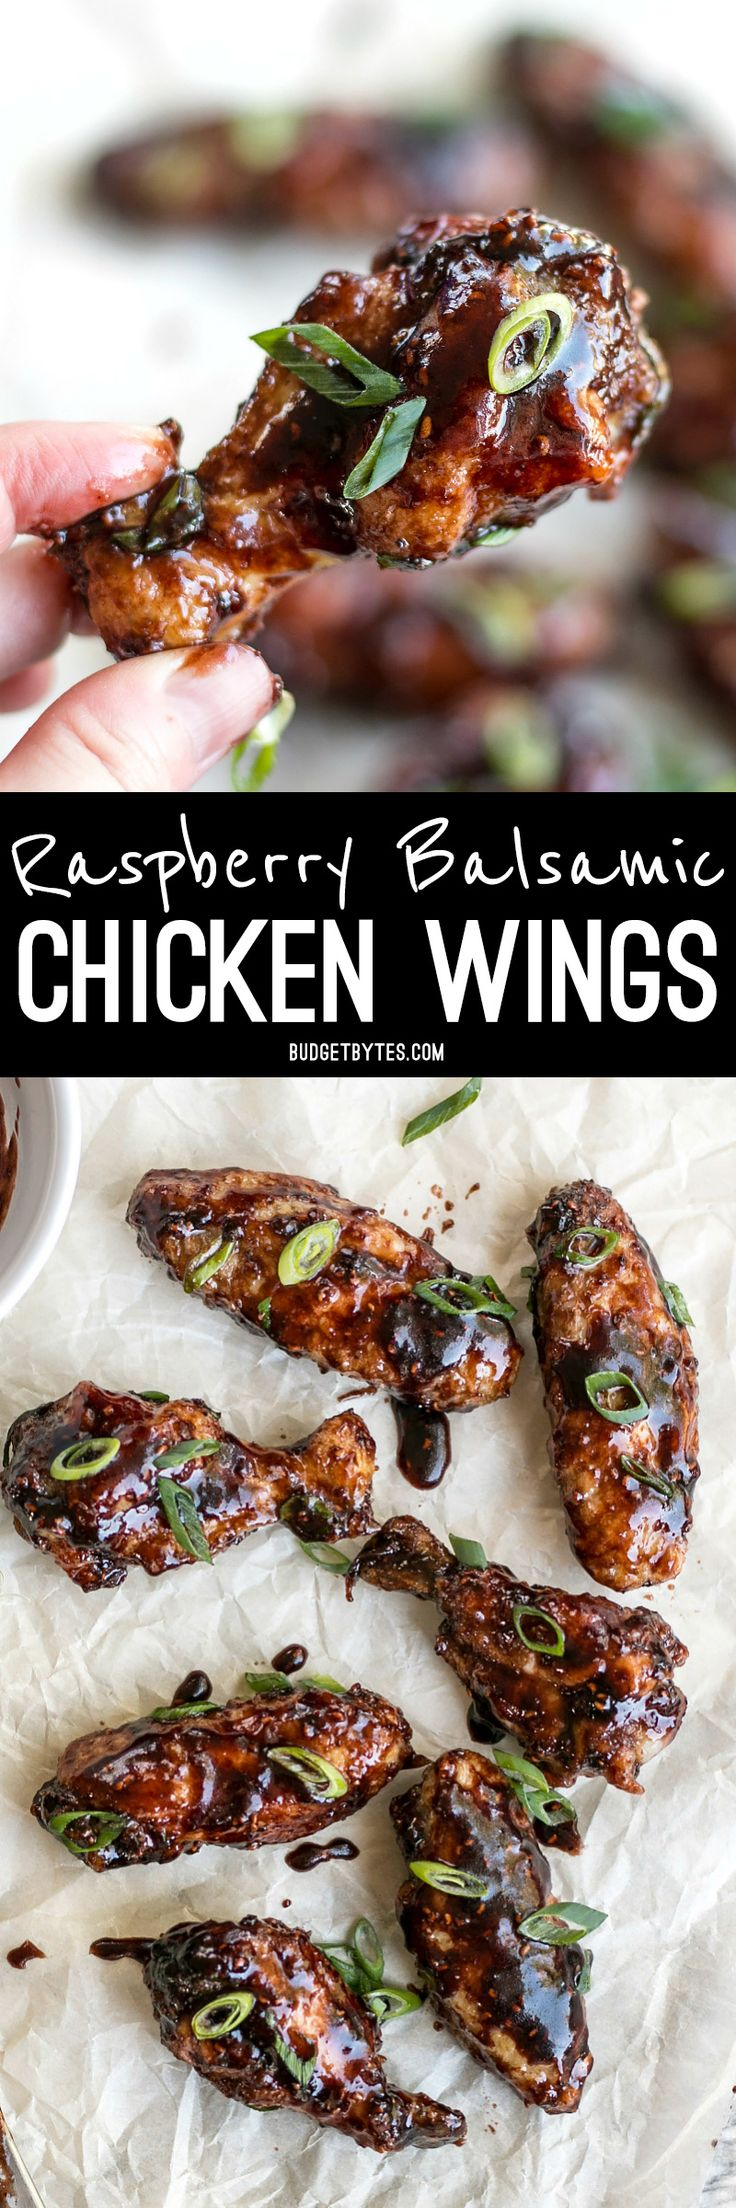 These crispy Raspberry Balsamic Baked Chicken Wings are baked, not fried, and slathered in a sweet, tangy, and rich homemade sauce. BudgetBytes.com